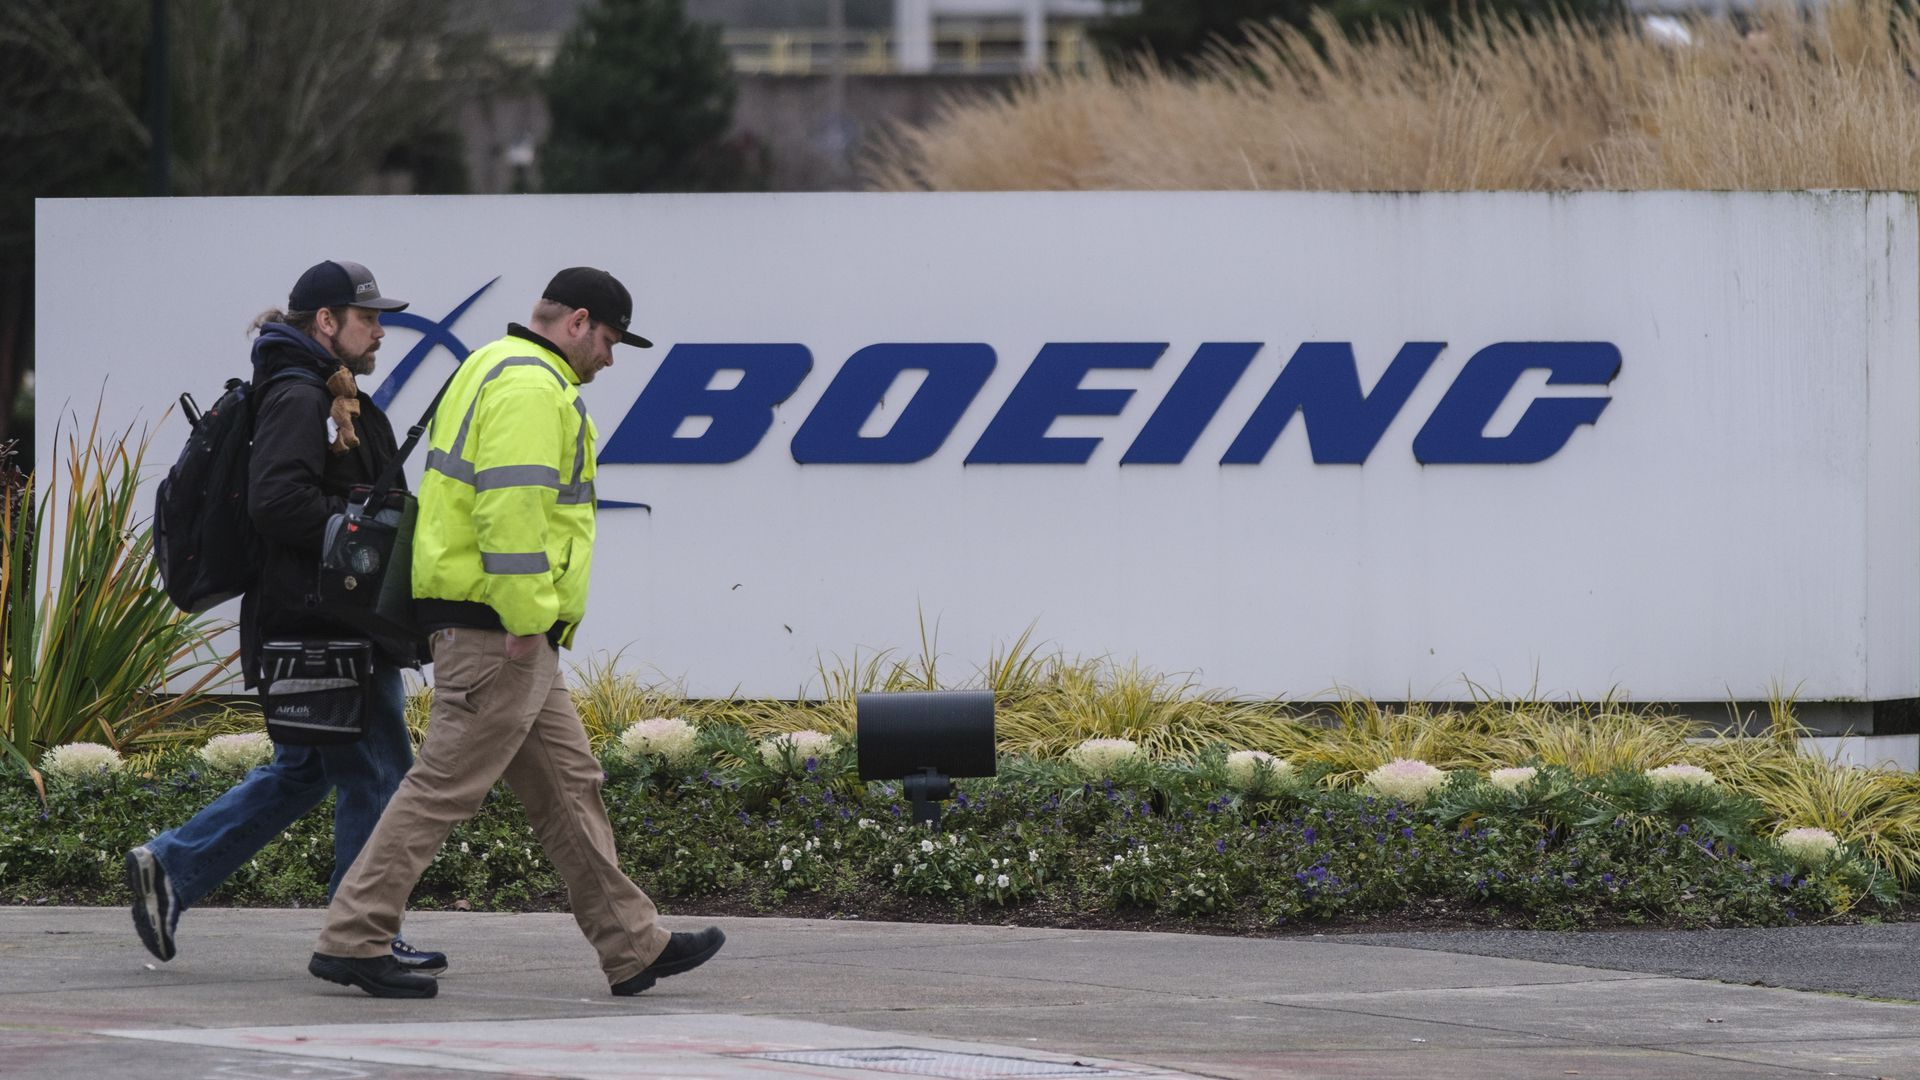 CNBC: Boeing seeks $10 billion or more loan to cover 737 MAX fallout costs